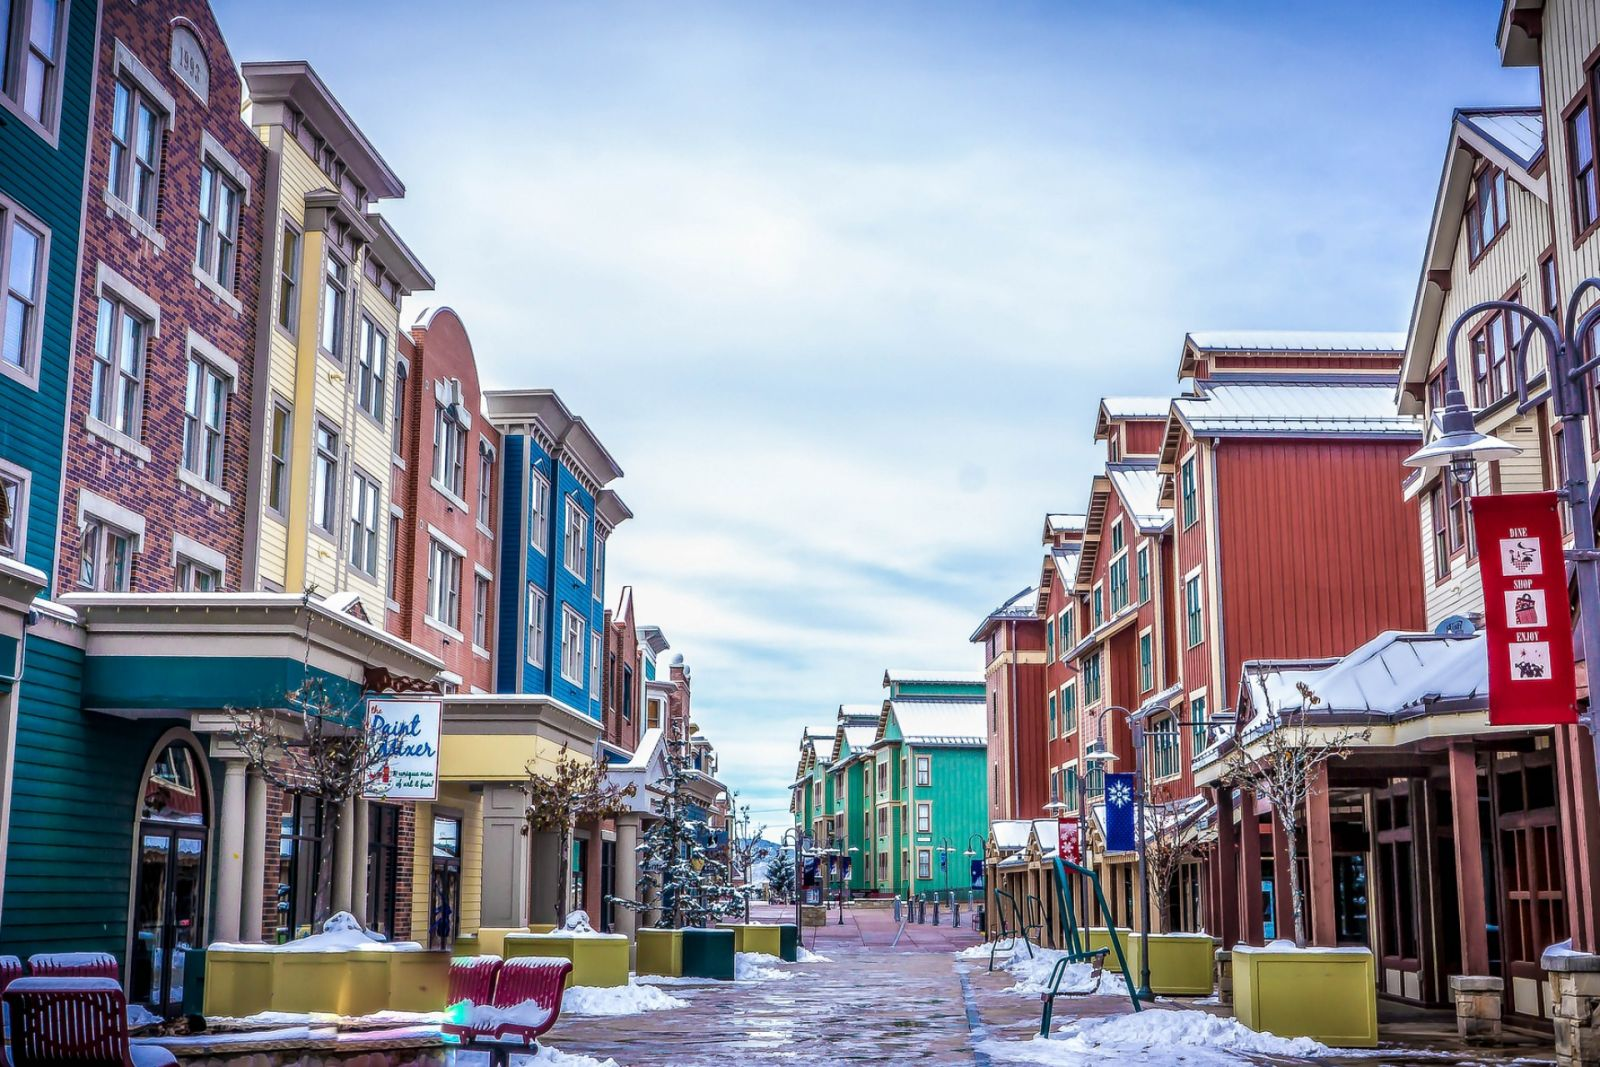 Colorful buildings lining Main Street Park City